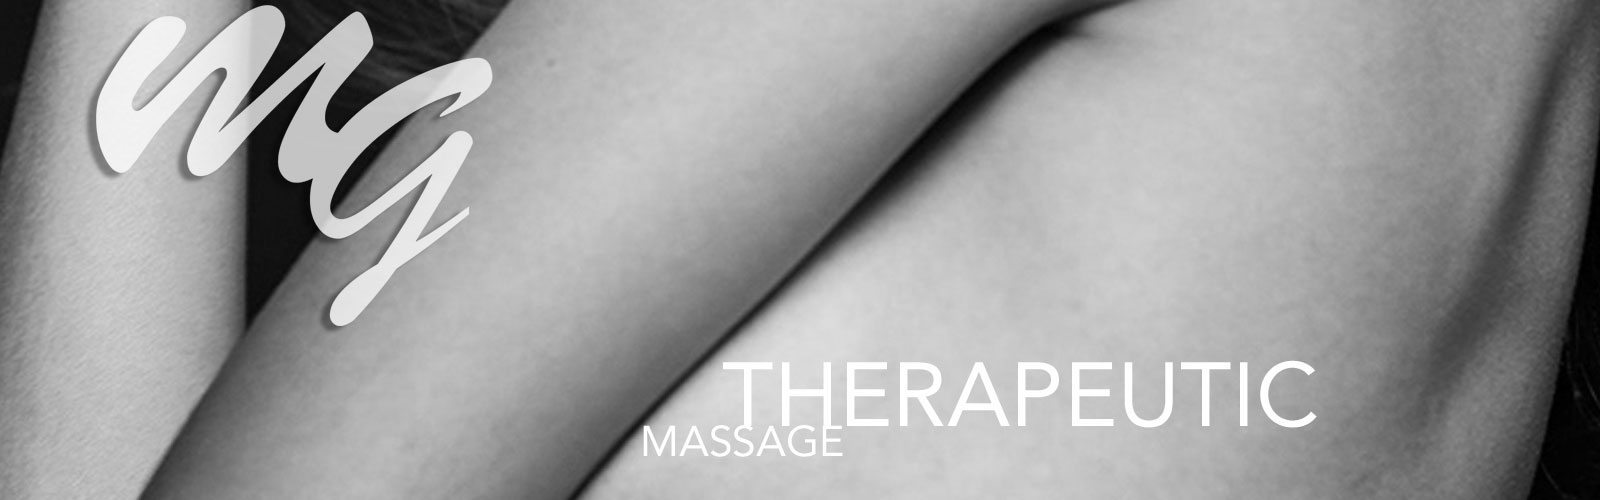 header_massage.jpg